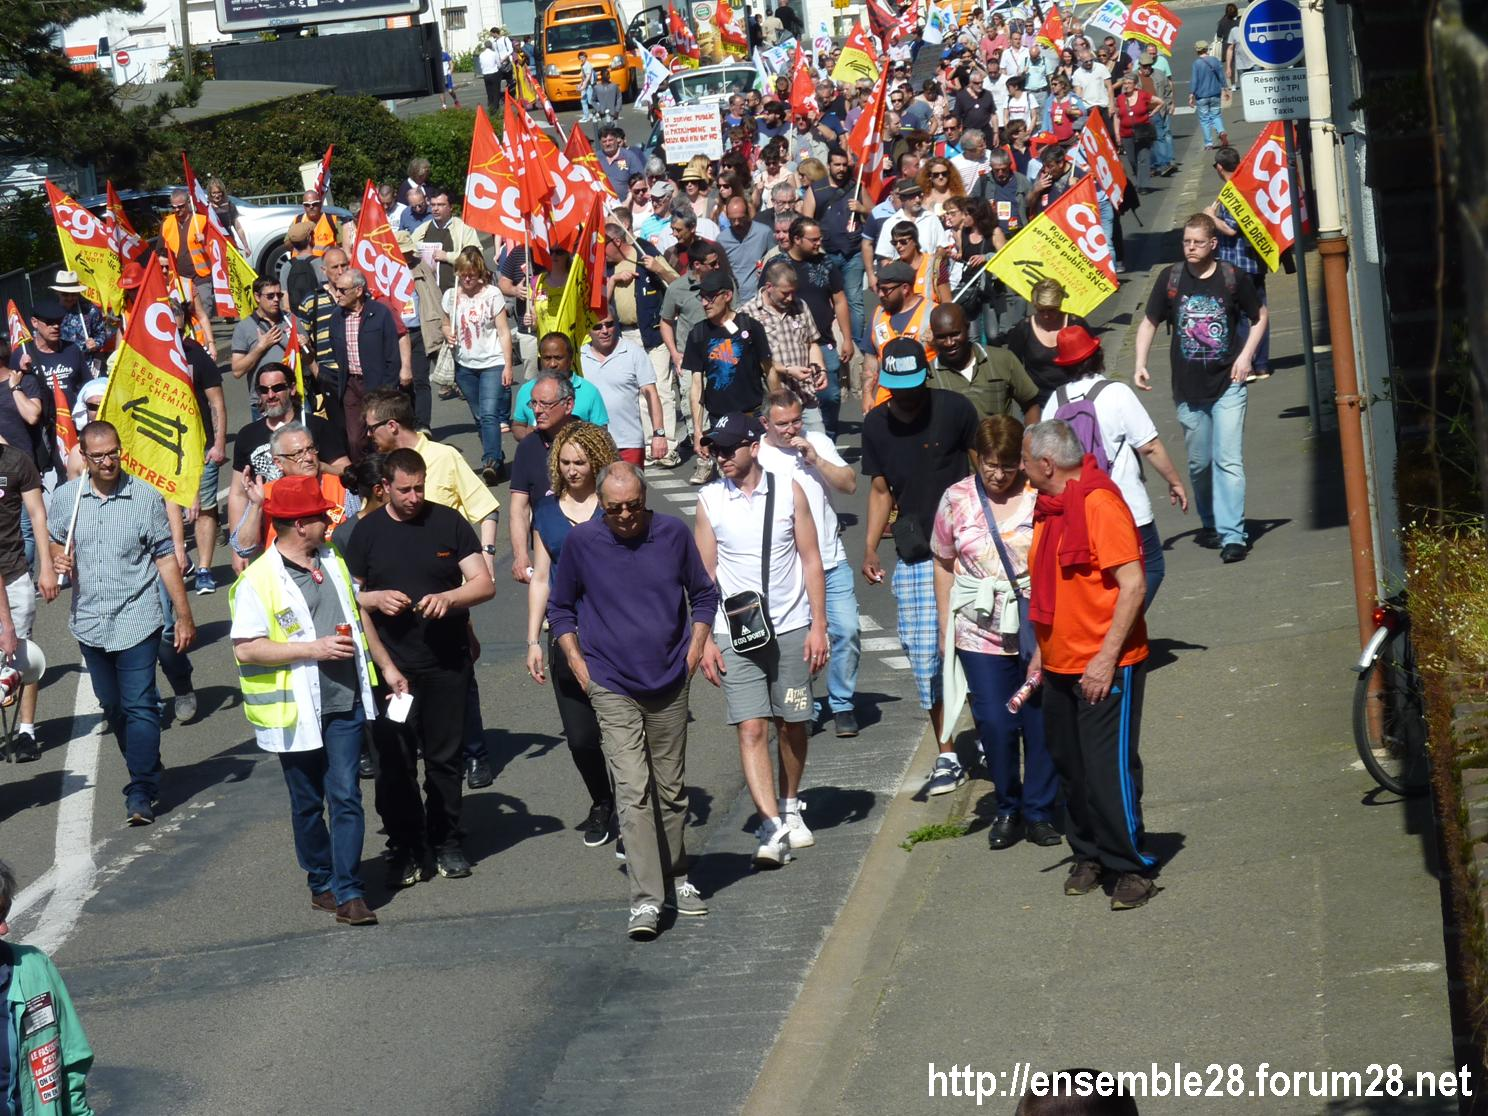 19-04-2018 Chartres Manifestation Interprofessionnelle CGT Solidaires SNES-FSU n°12